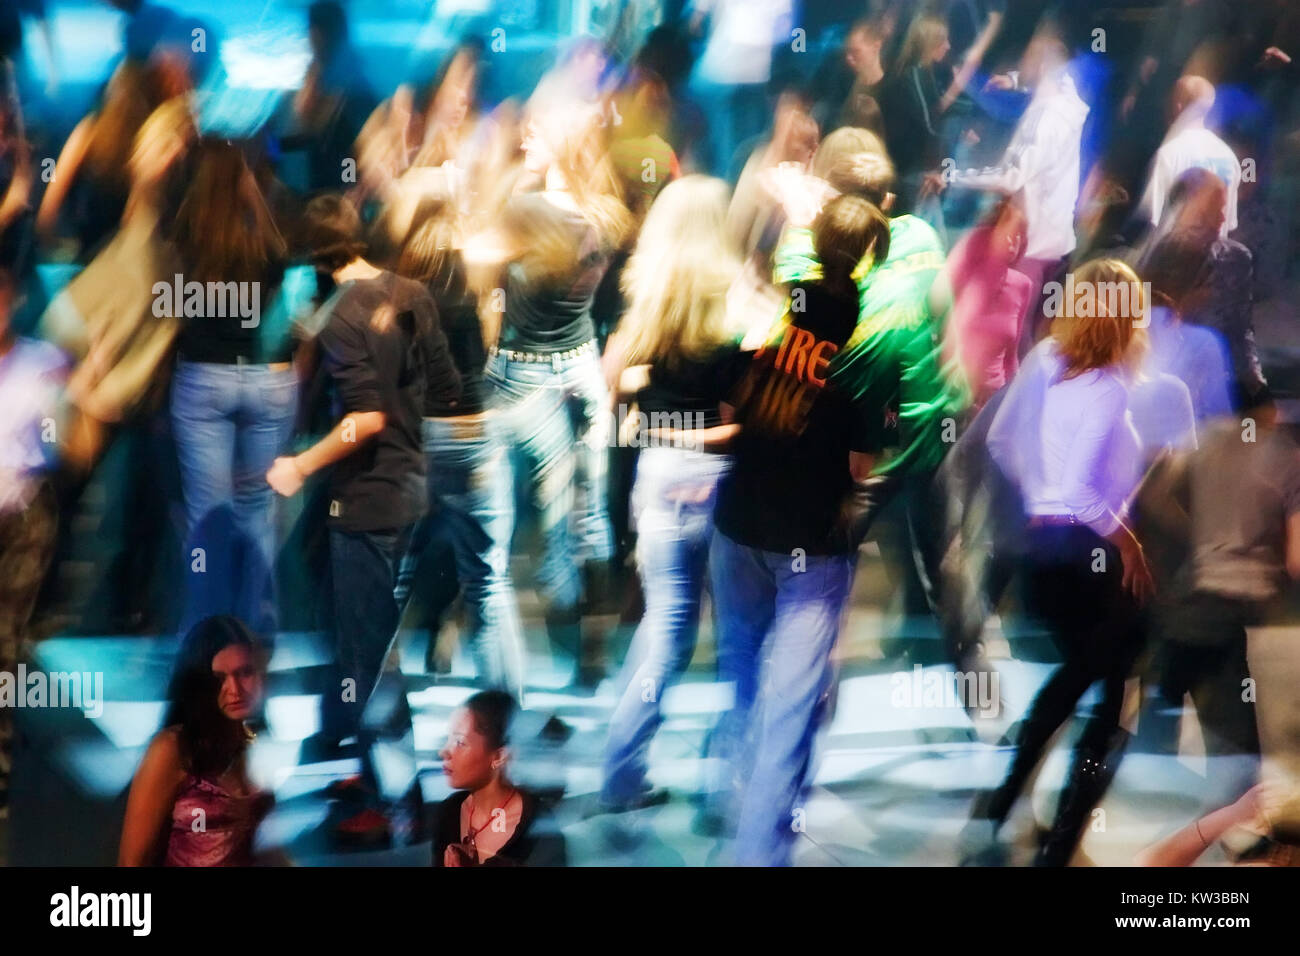 In club it was very cheerful - Stock Image